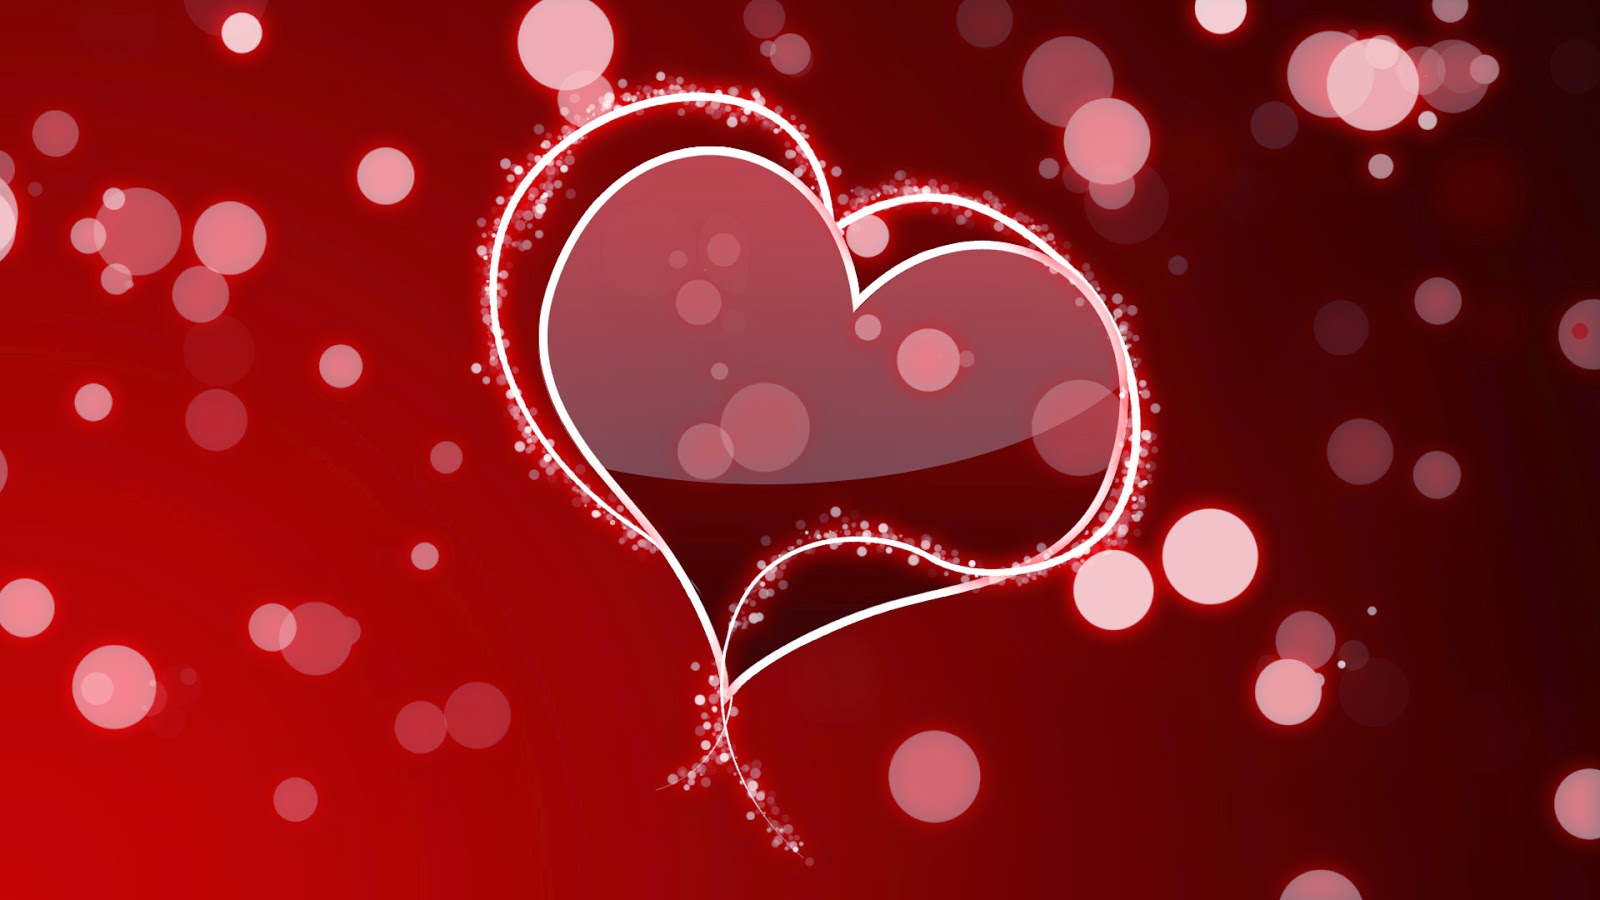 Buy Love of Images themes pictures picture trends